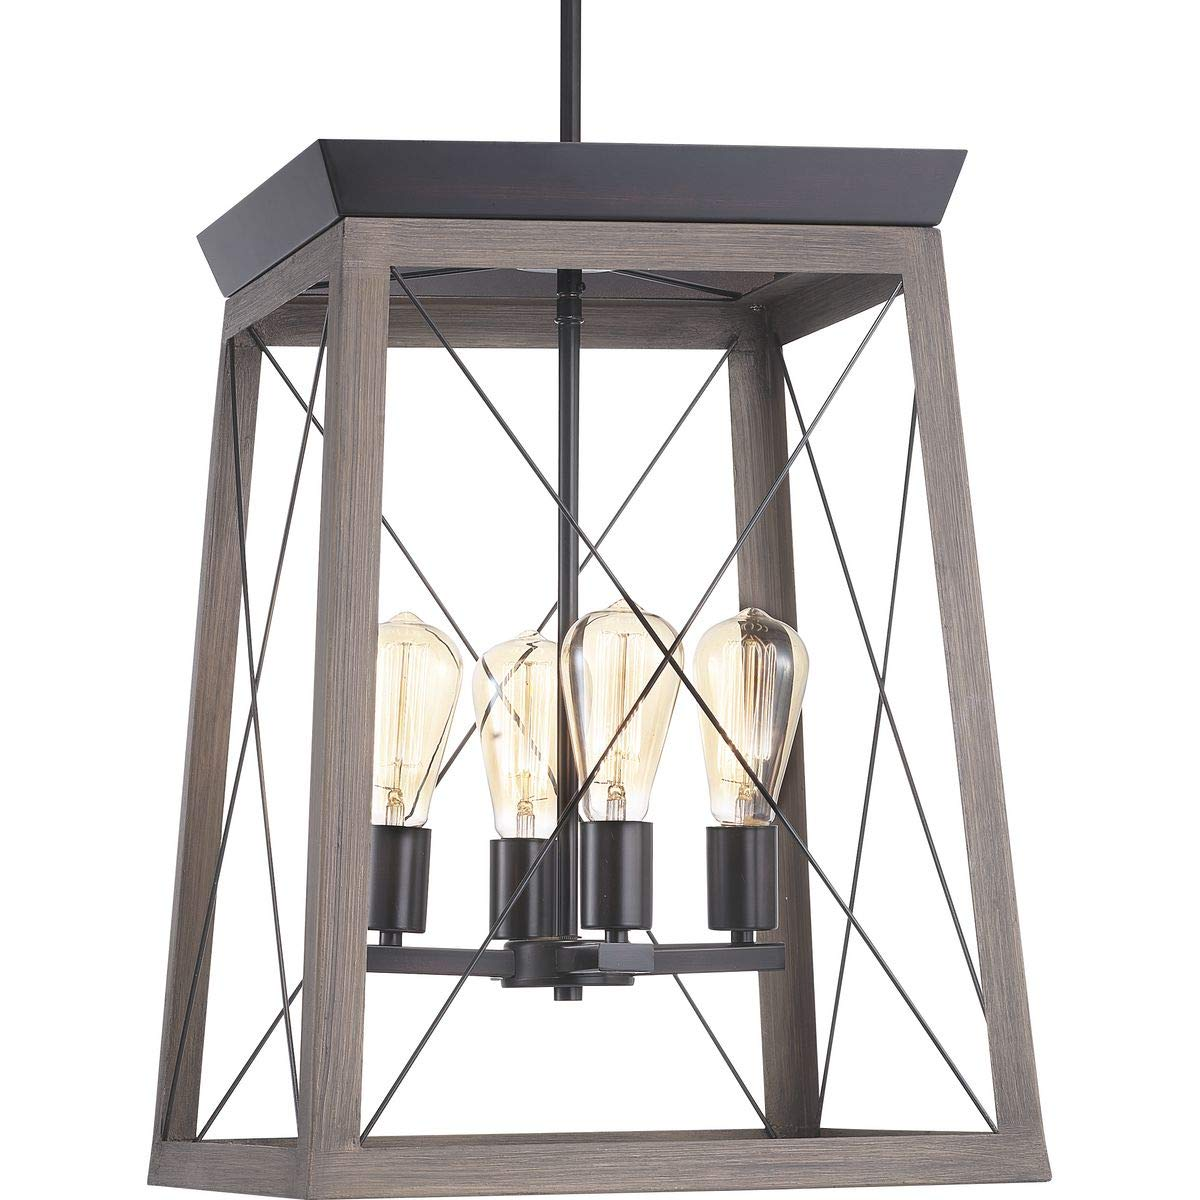 Progress Lighting P500178-020 Briarwood Collection Four-Light Foyer, Antique Bronze